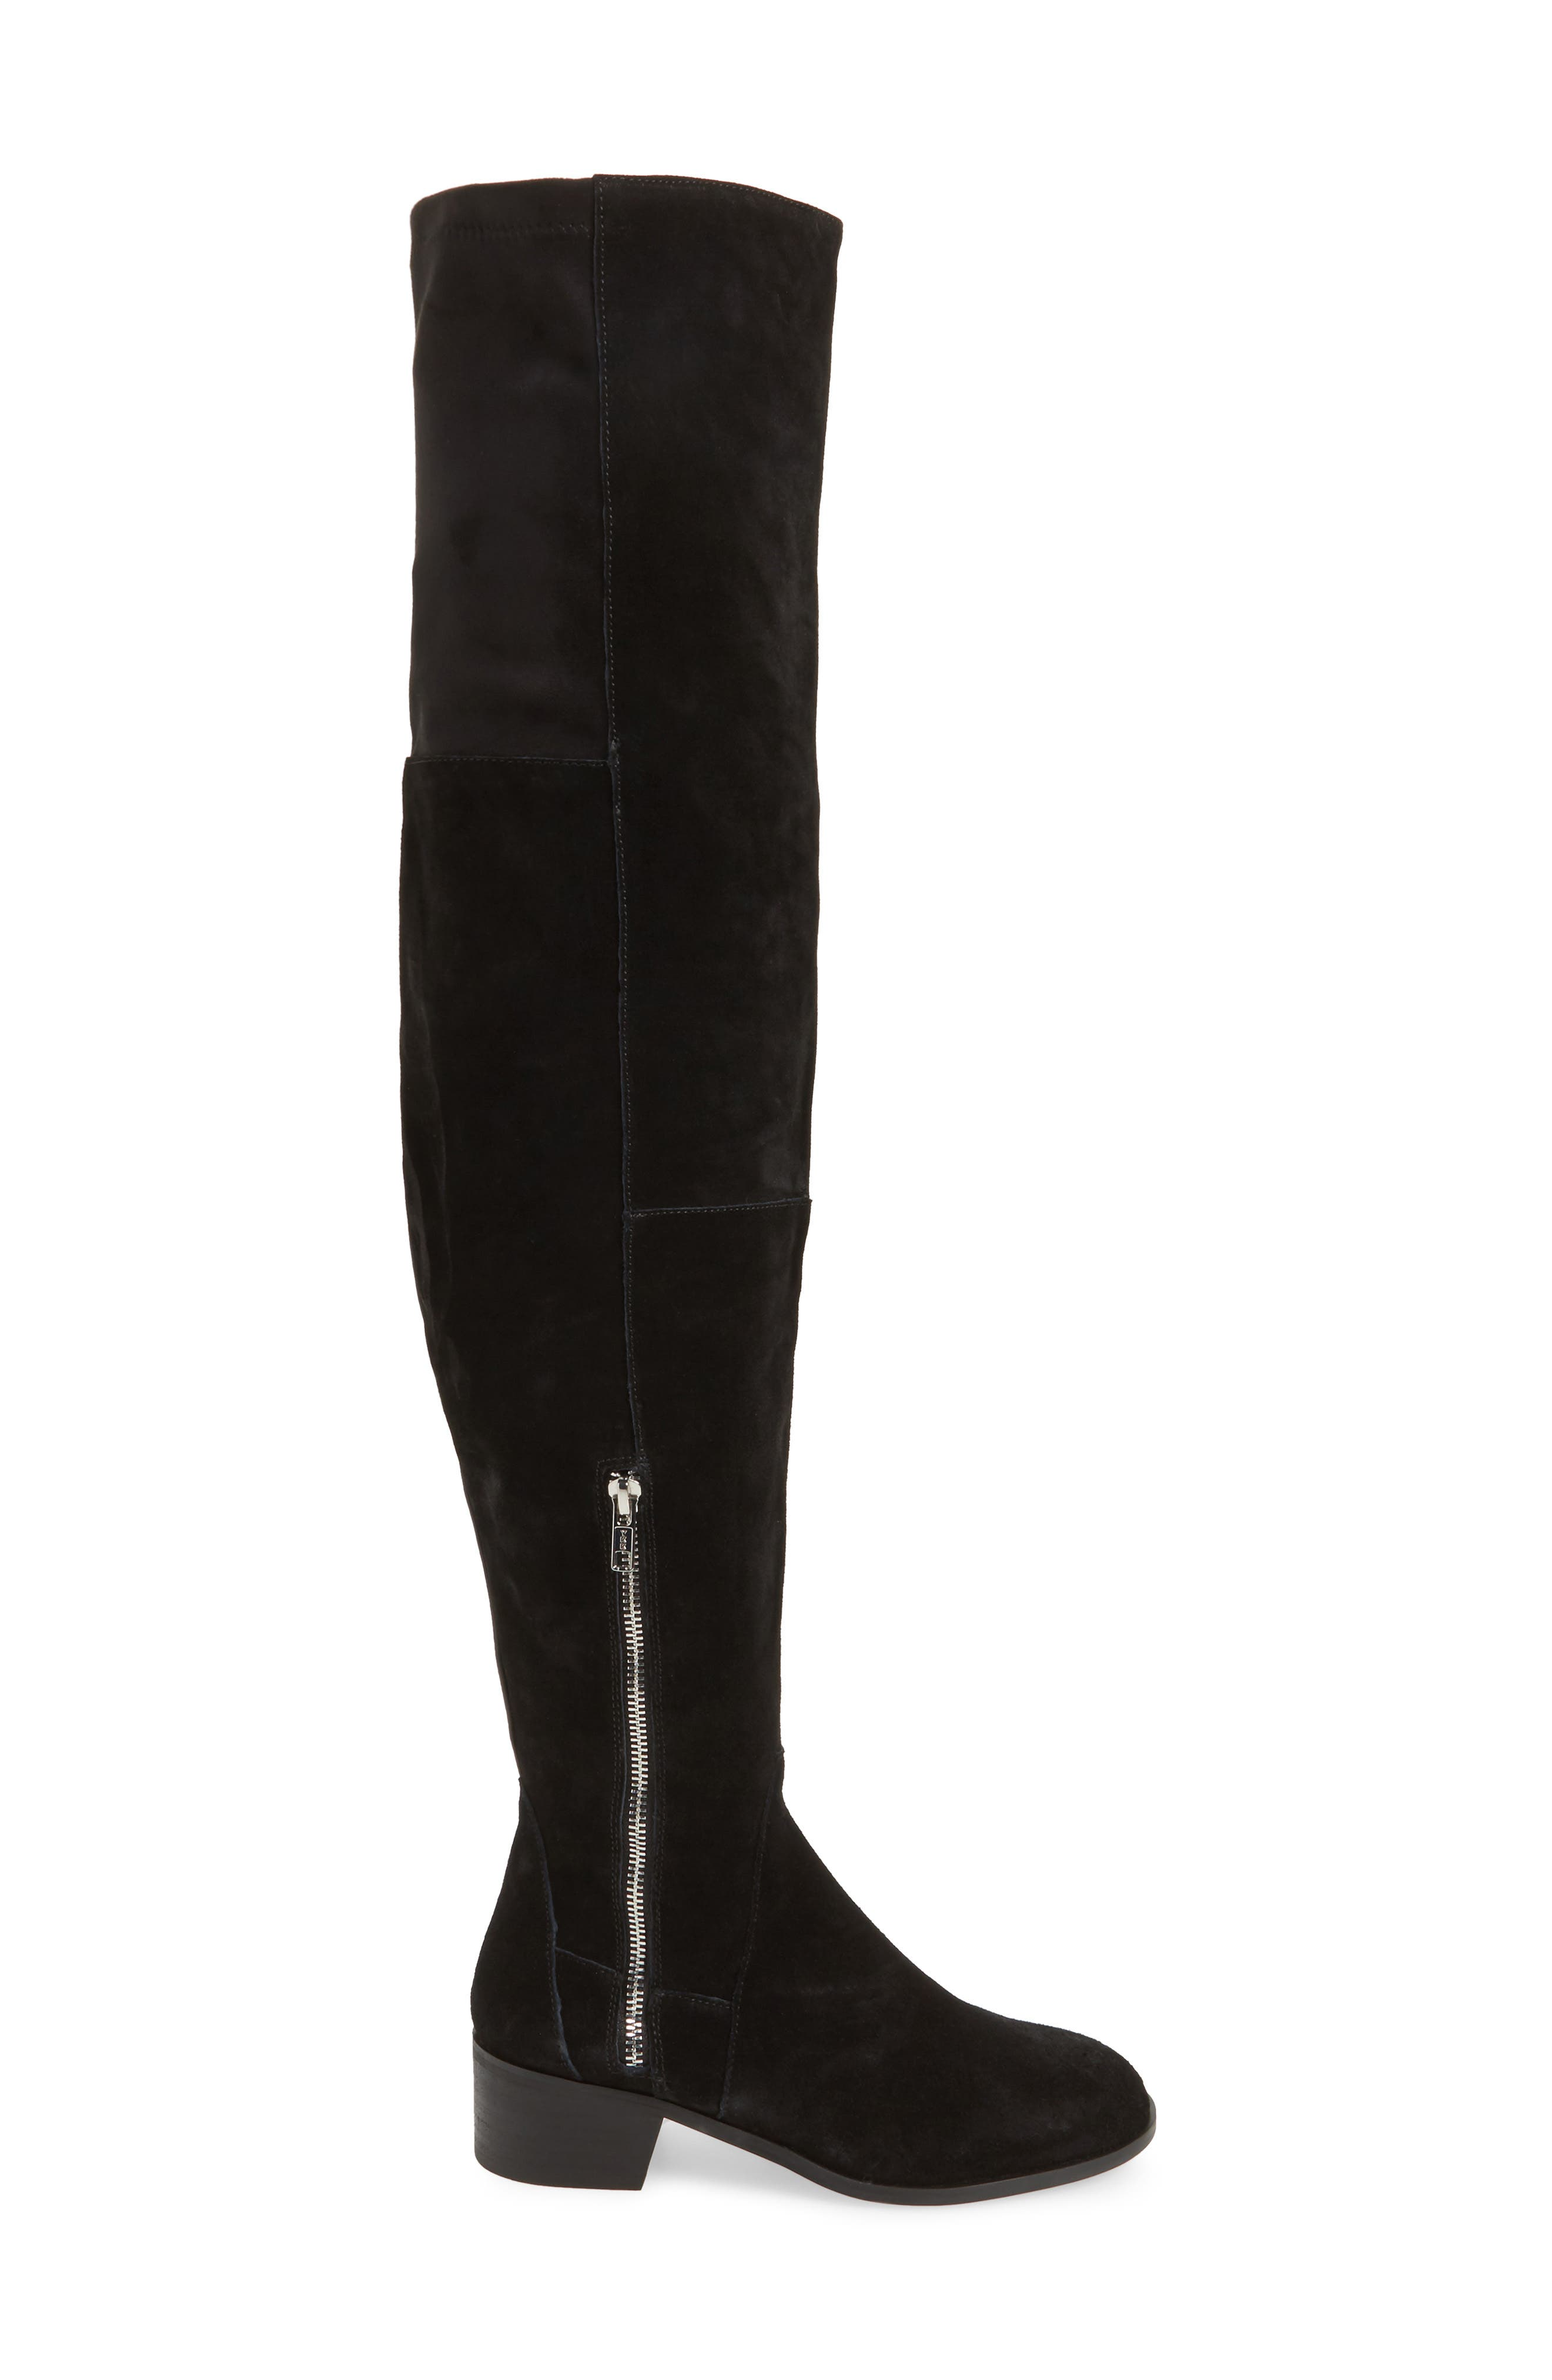 Everly Thigh High Boot,                             Alternate thumbnail 3, color,                             001